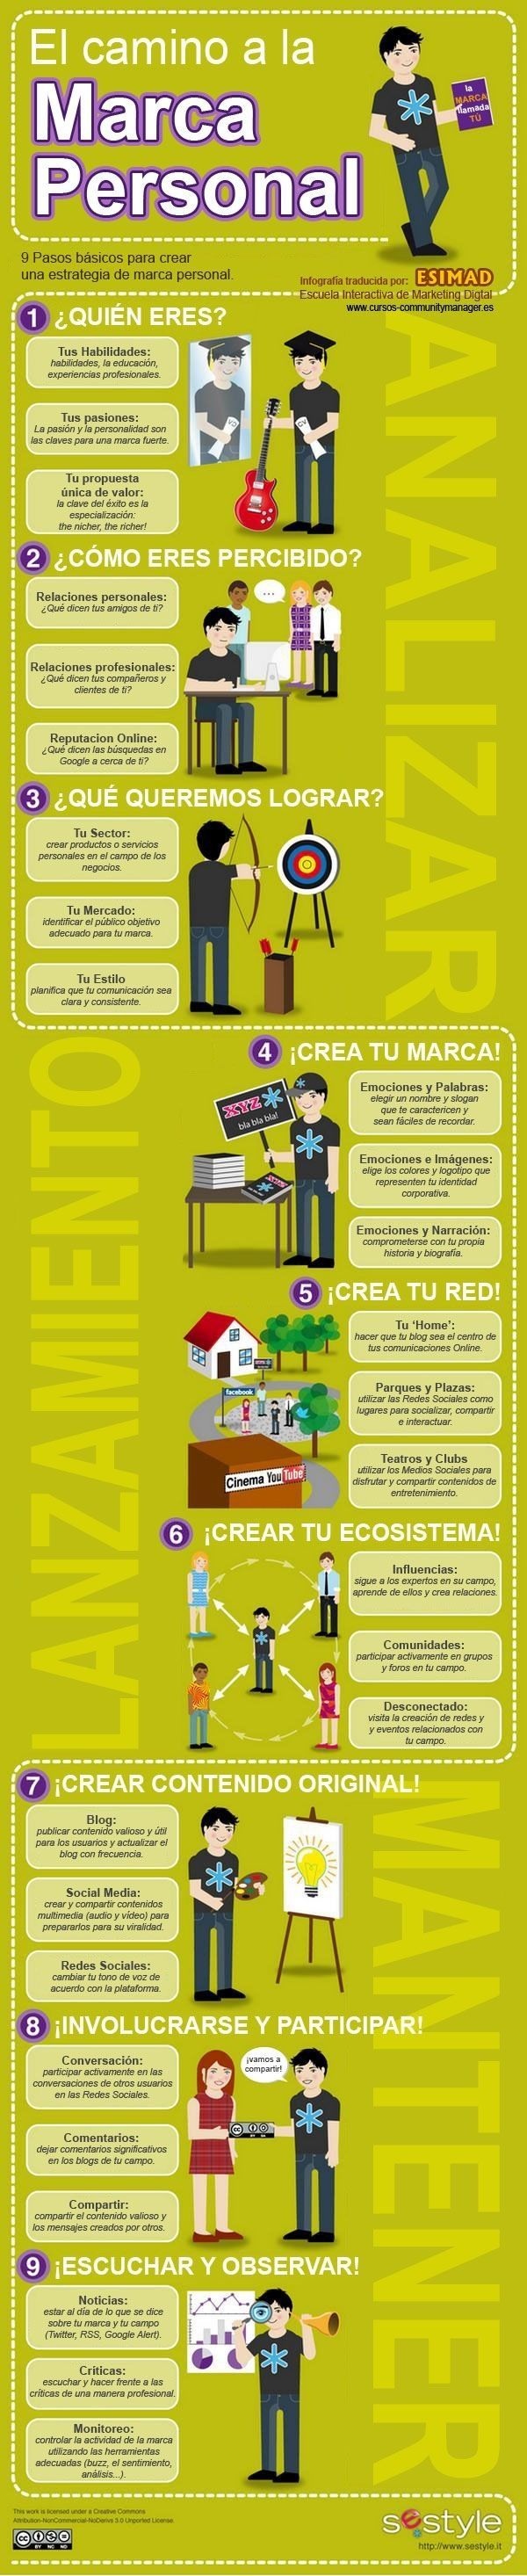 9 pasos para crear tu Marca Personal #infografia #infographic #marketing